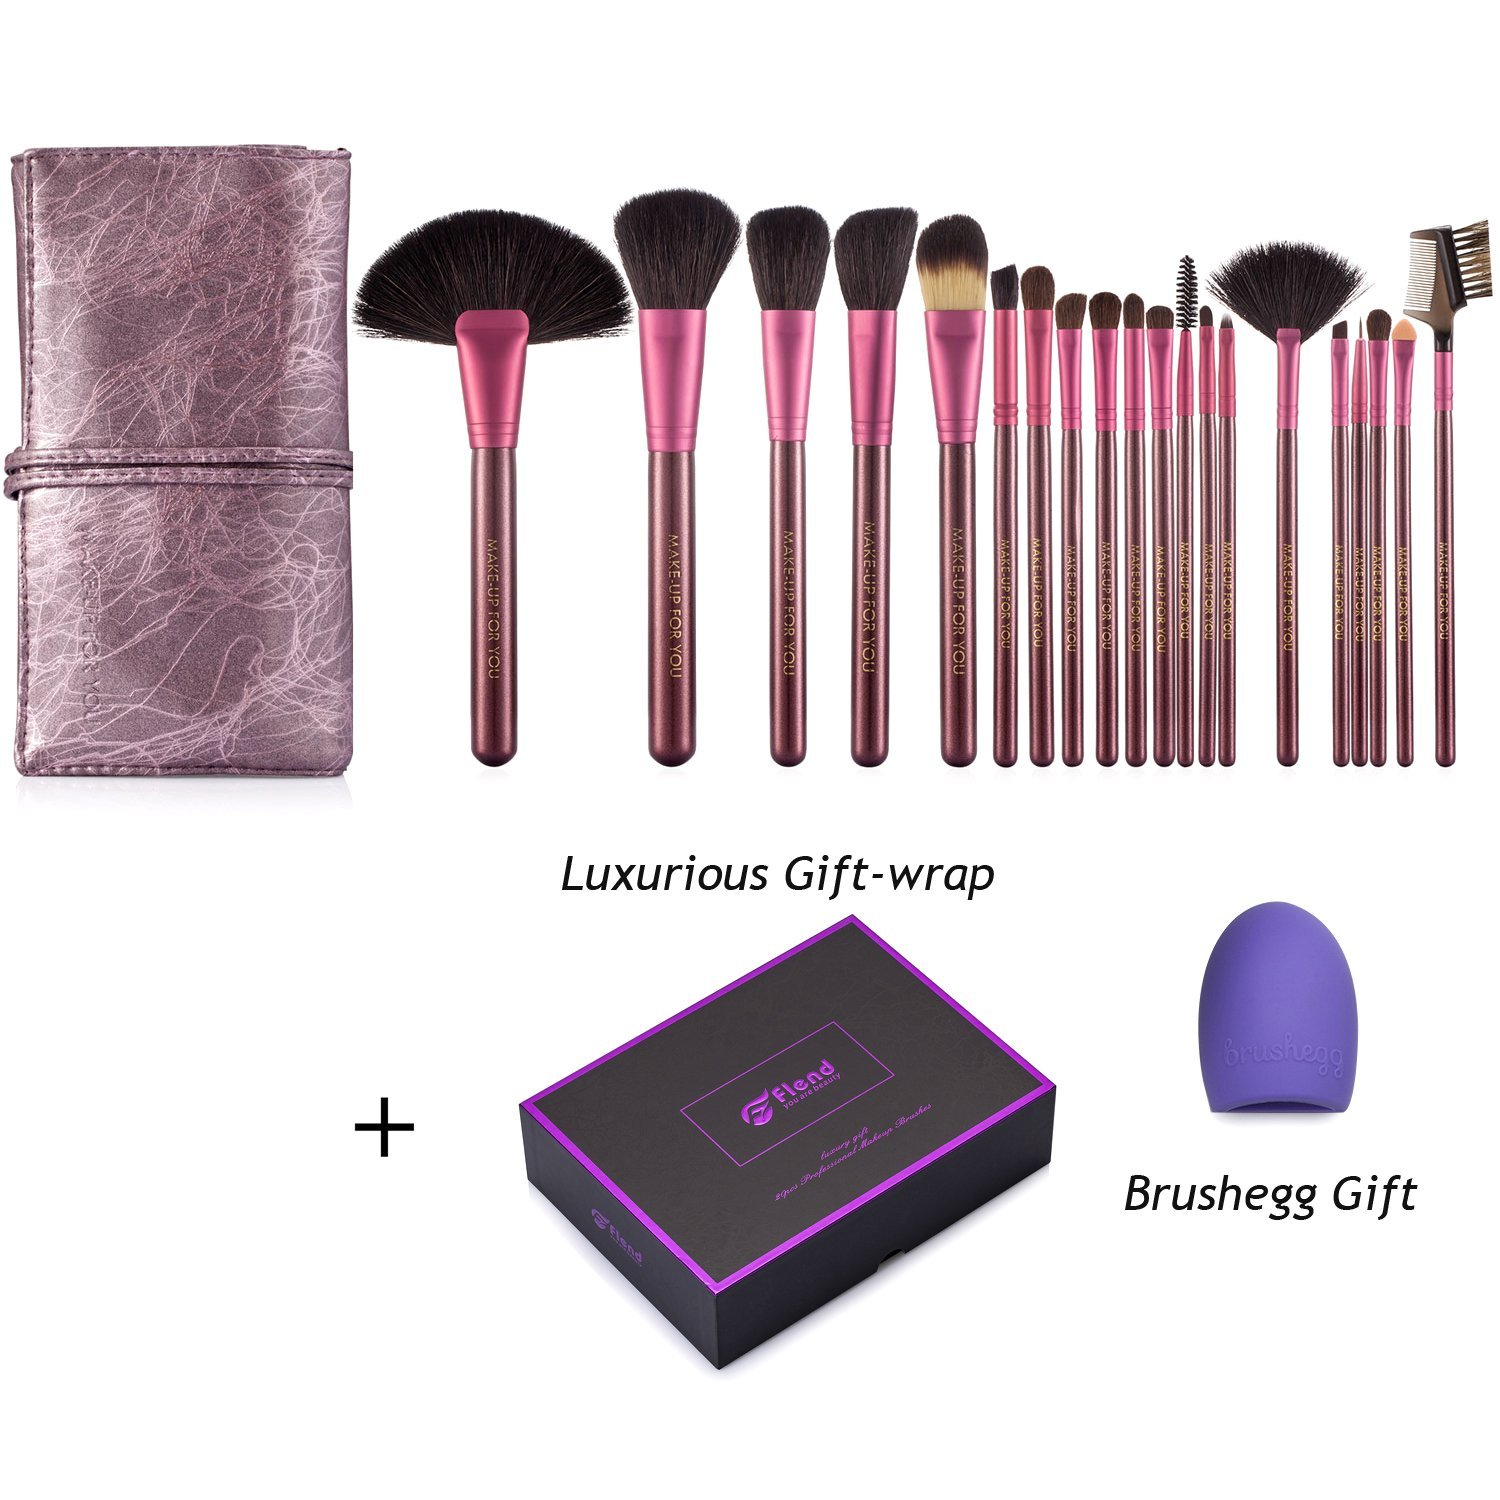 20 pcs Brush Set made of Soft Goat Hair Pony Hair | Flend Professional Makeup Brushes with PU Leather Roll Pouch (Purple)